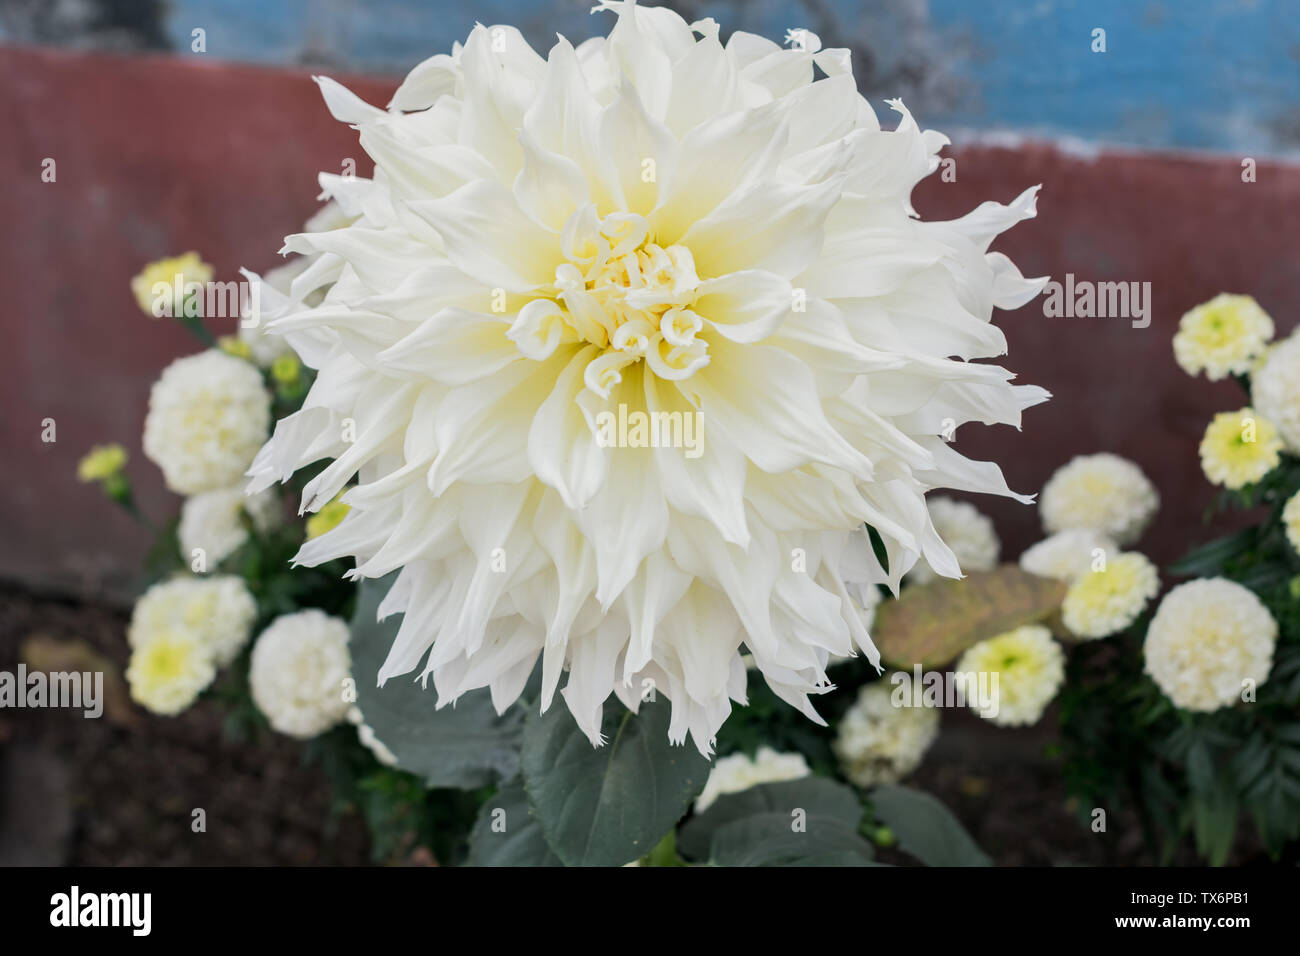 White Guldavari Flower plant, a herbaceous perennial plants. It is a sun loving plant Blooms in early spring to late summer. A very popular flower for - Stock Image